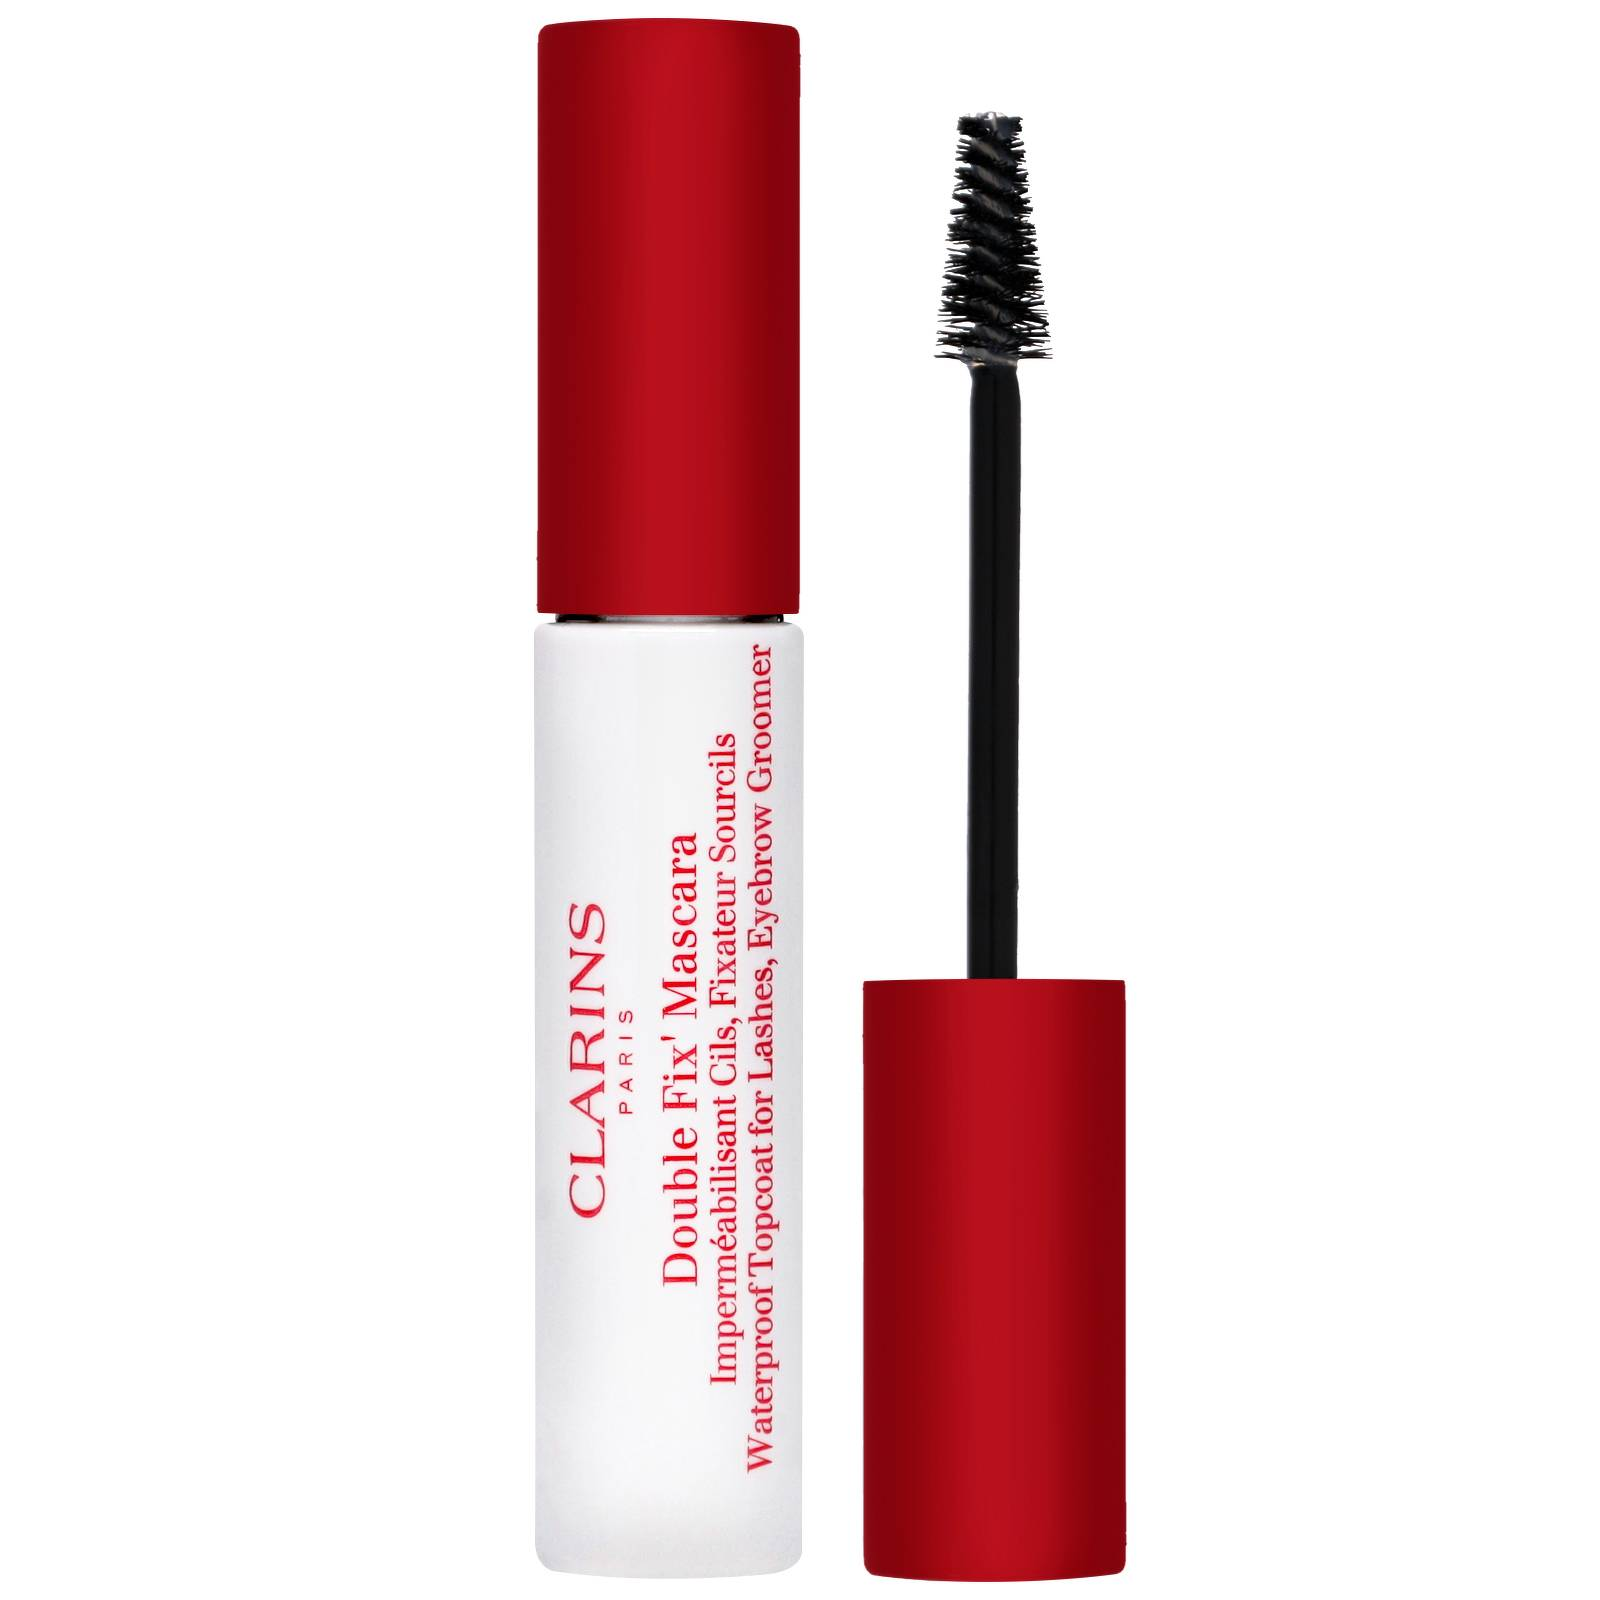 Clarins - Double Fix Mascara Waterproof Topcoat for Lashes 7ml / 0.2 fl.oz. for Women